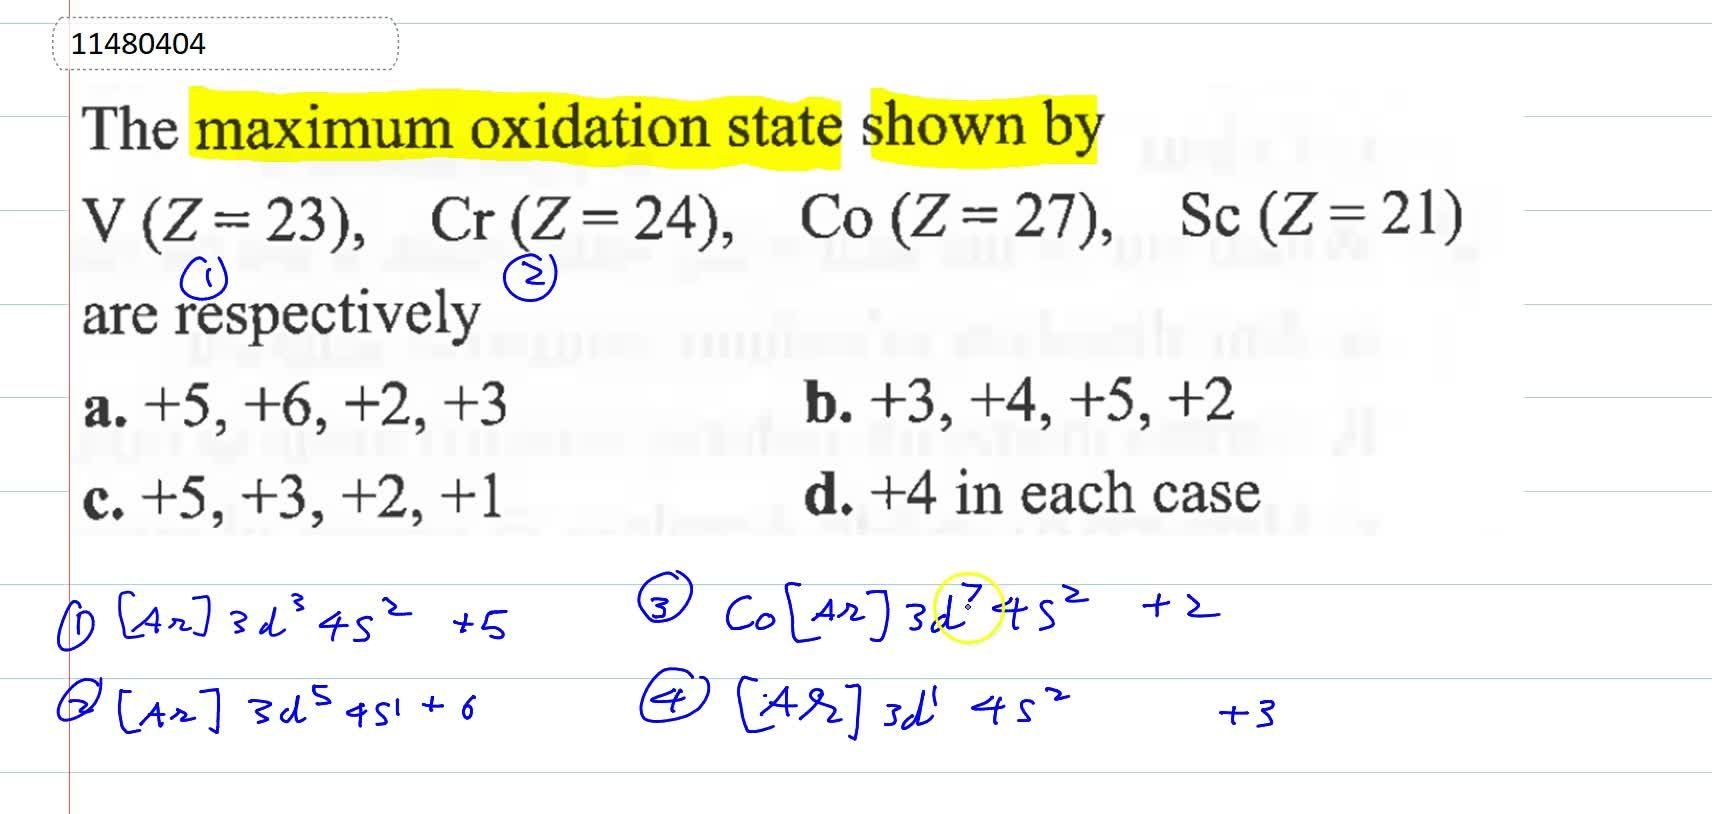 Solution for The maximum oxidation state shown by V(Z=23),Cr(Z